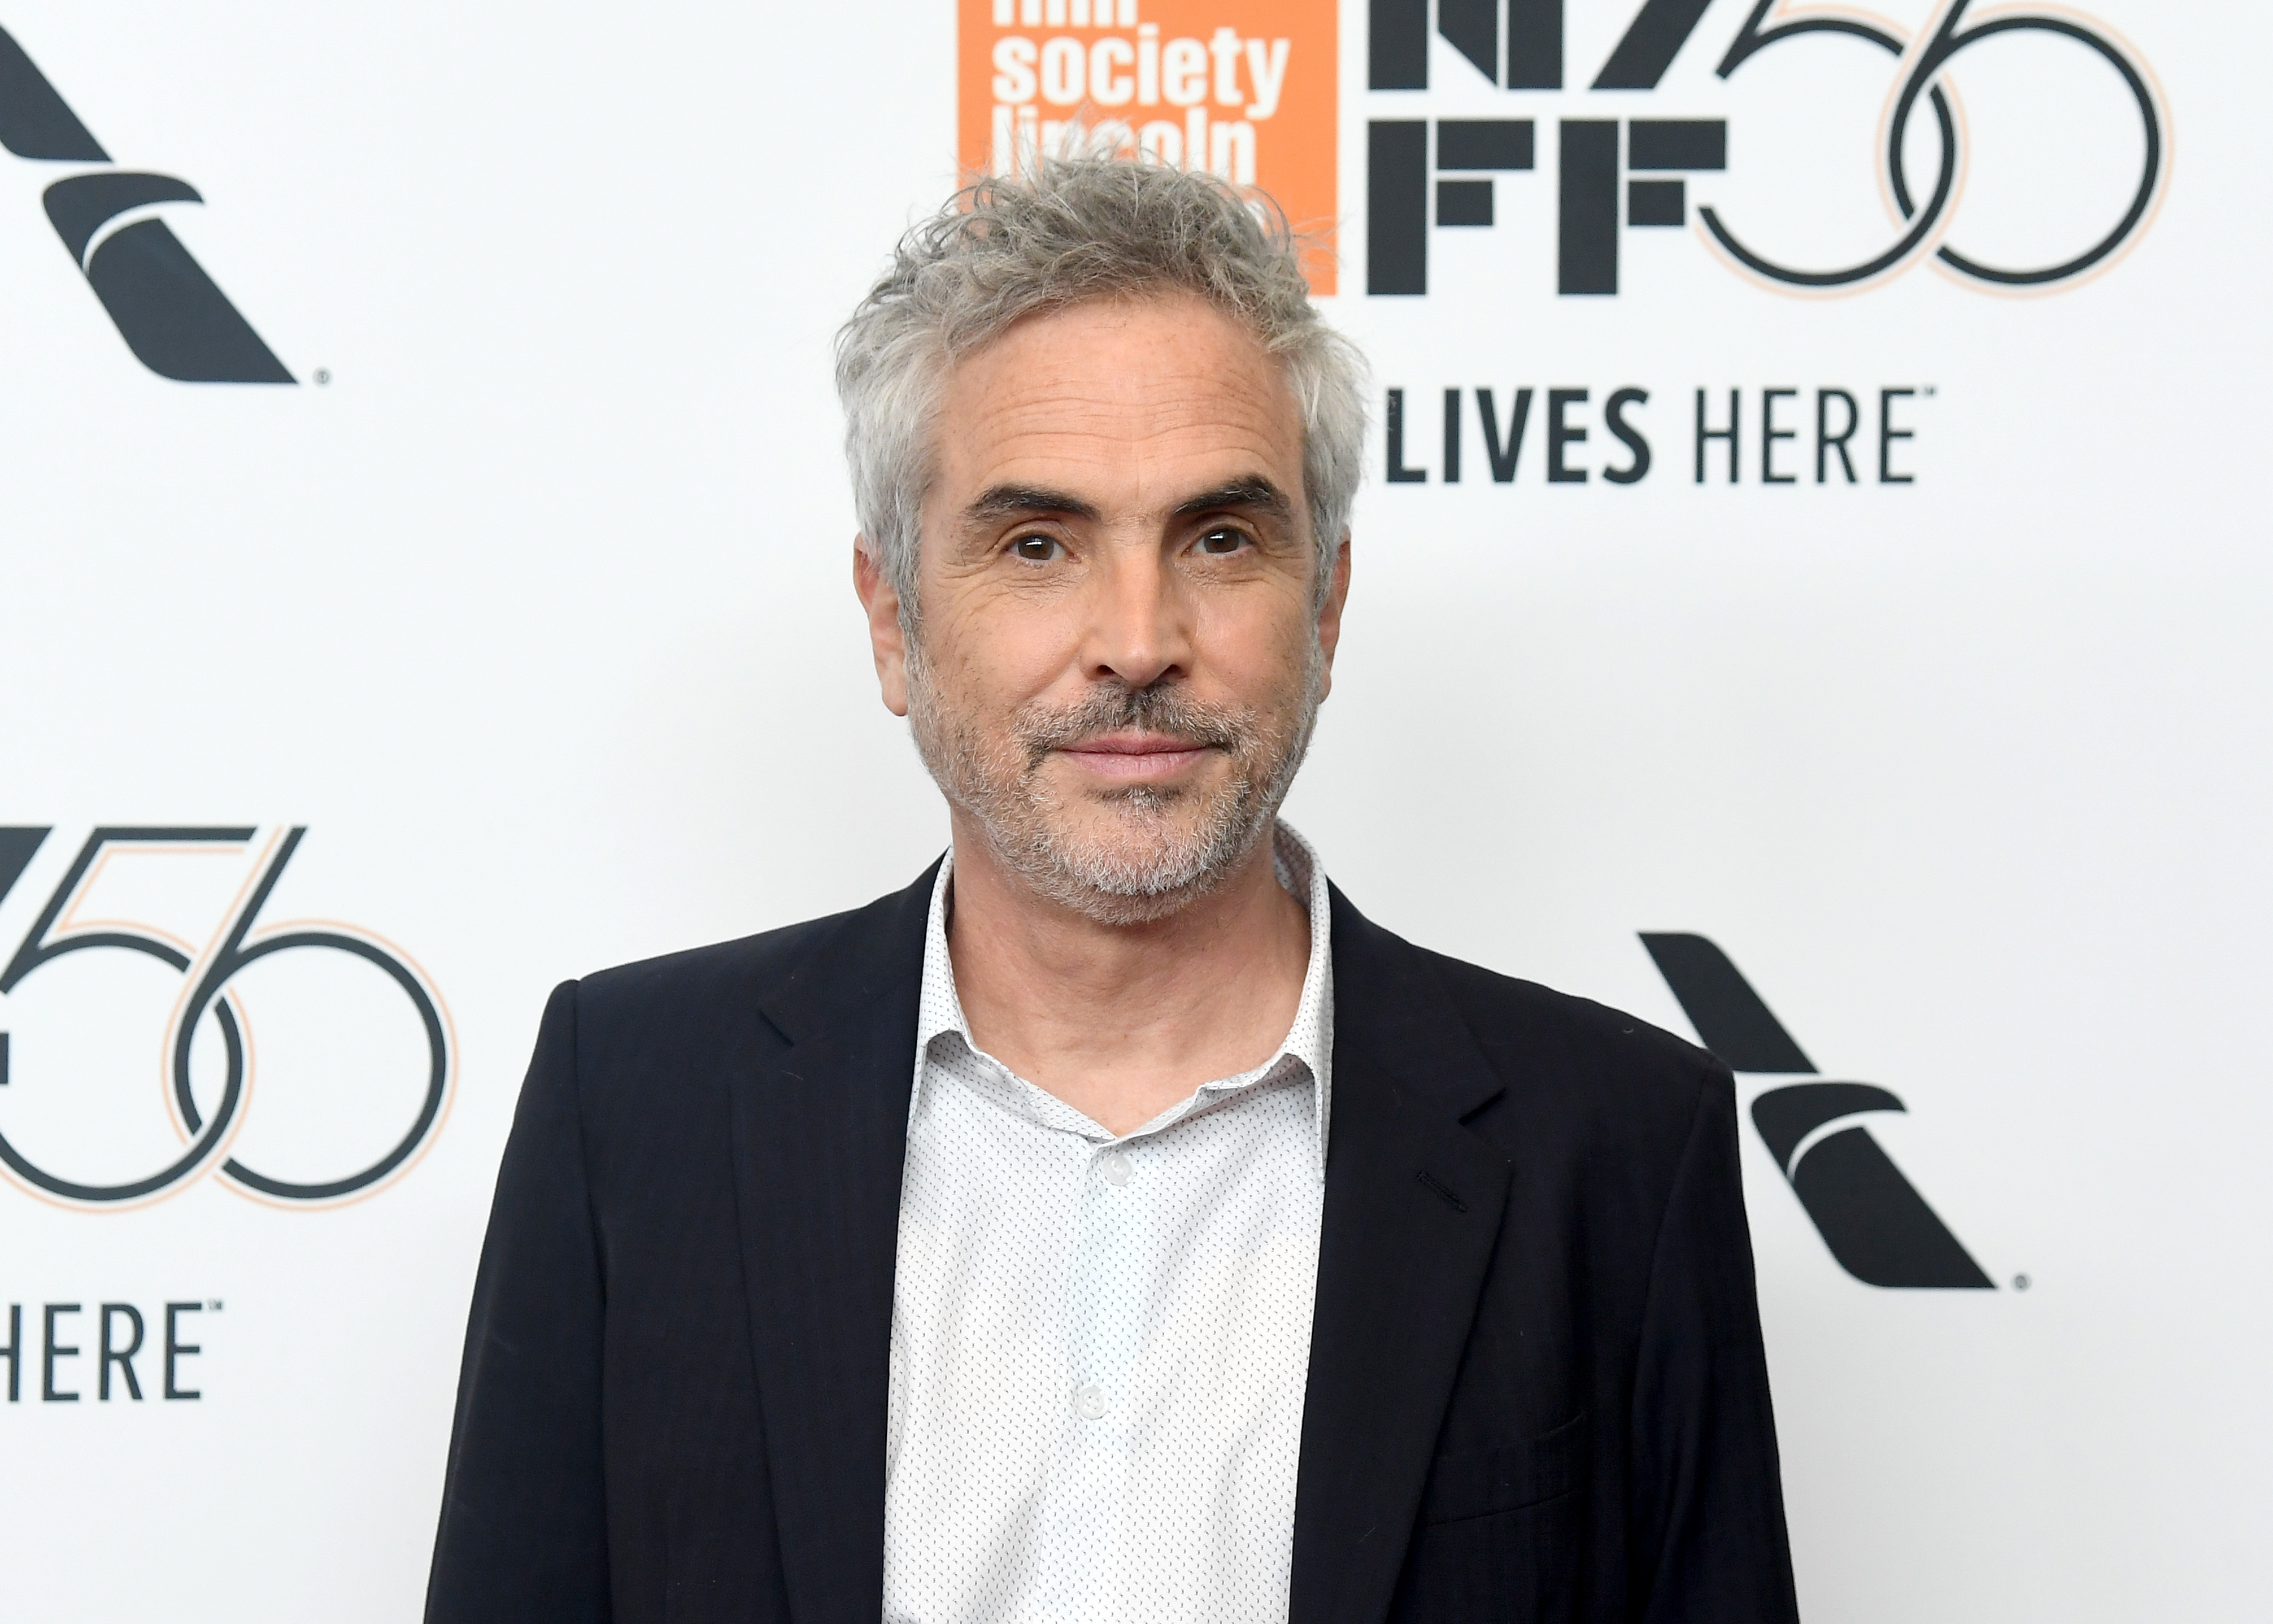 Alfonso Cuarón Breaks Down the Use of Language in 'Roma,' Including Plans for Subtitles in Mixtec